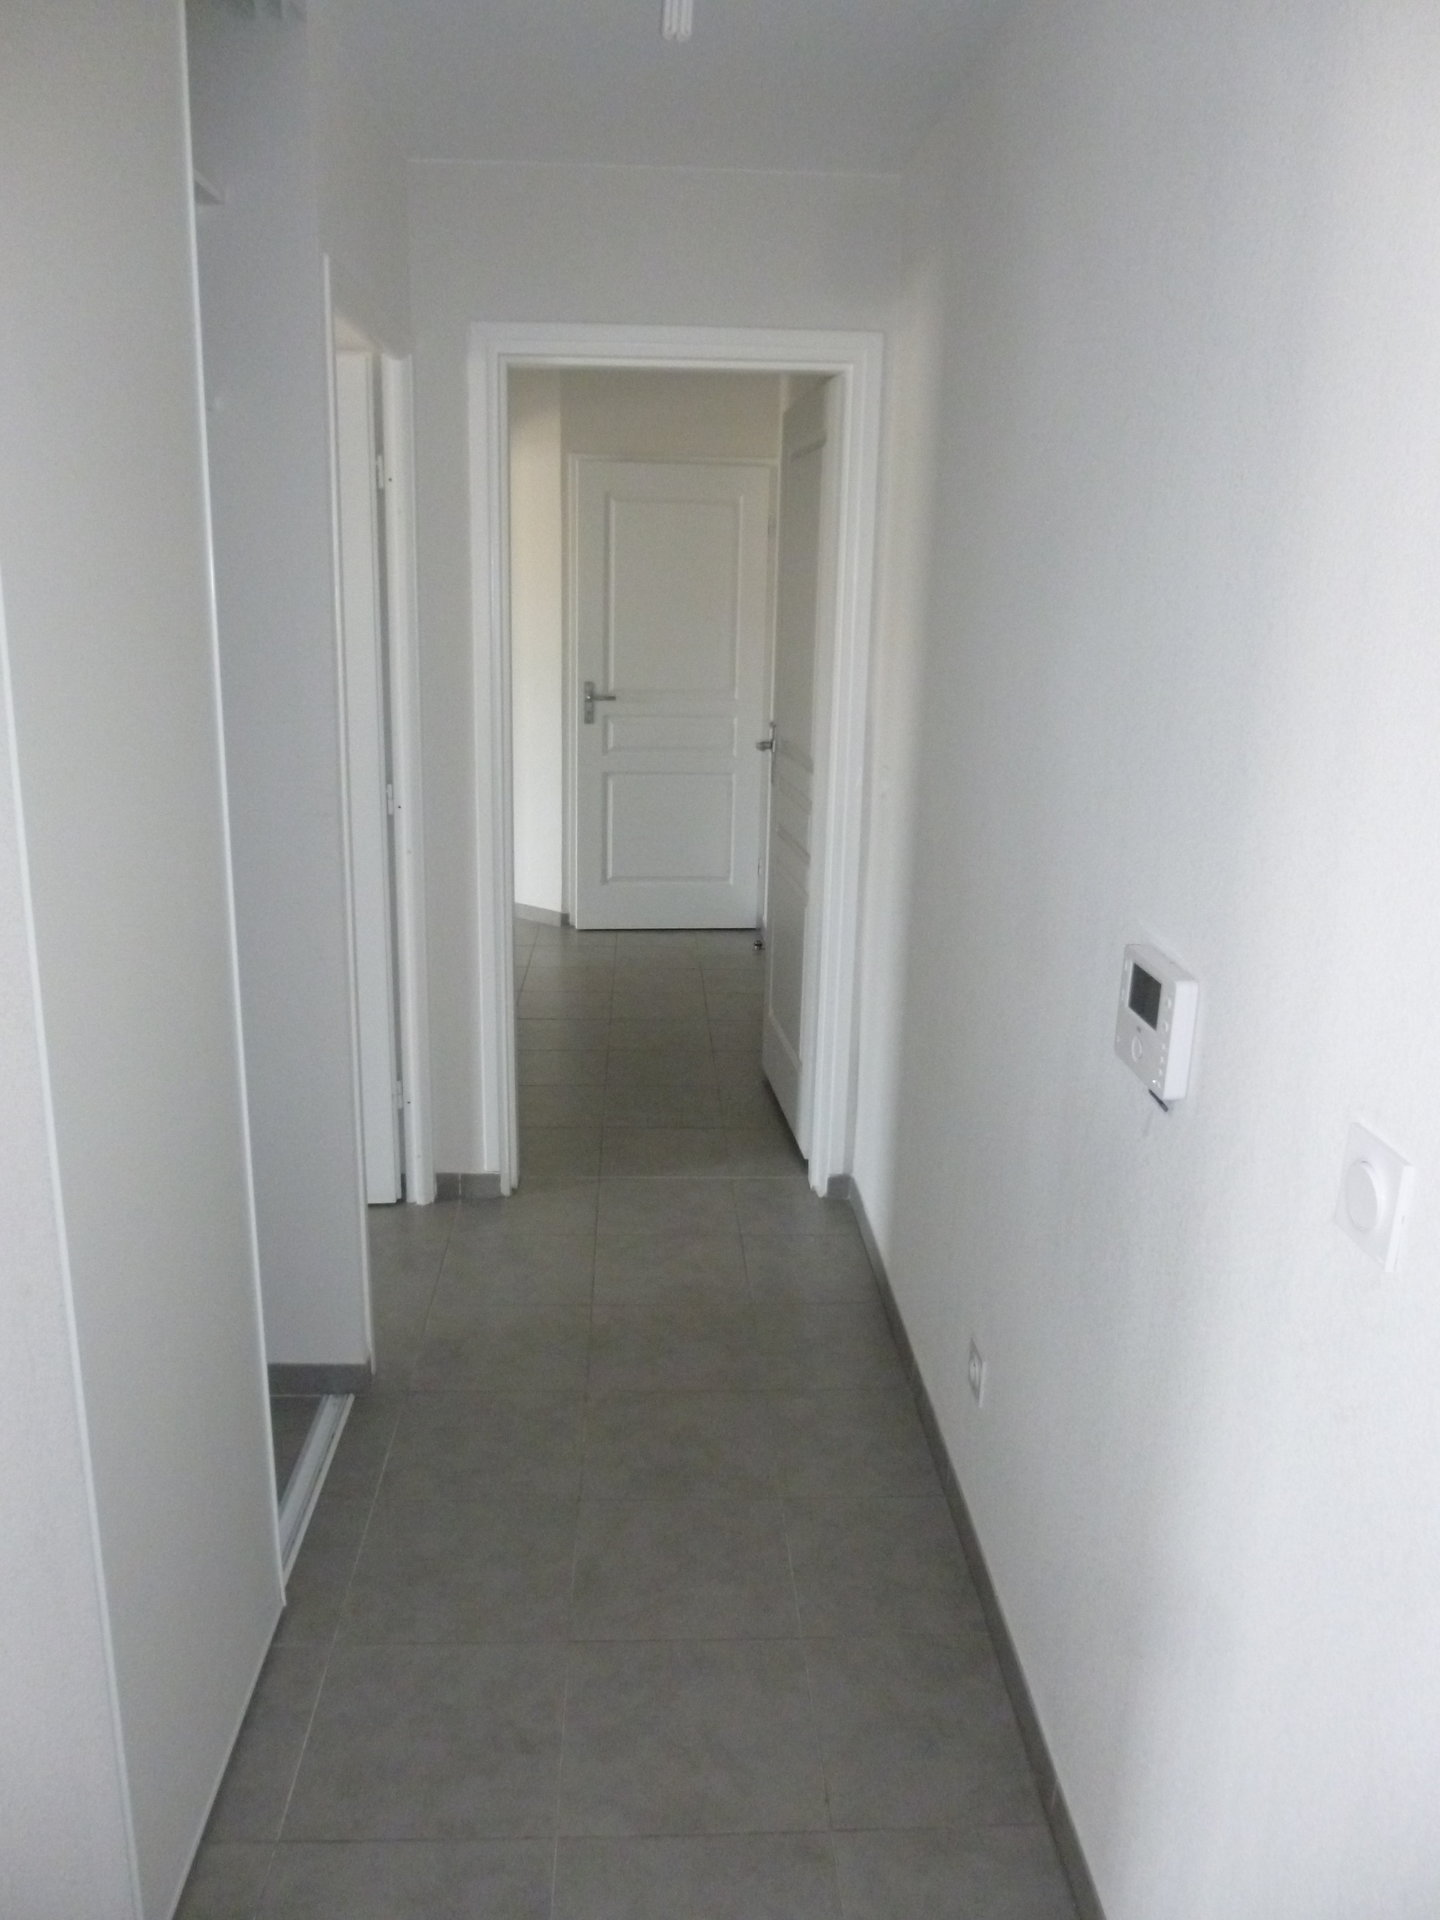 Location Appartement - Marseille 3ème Saint-Lazare